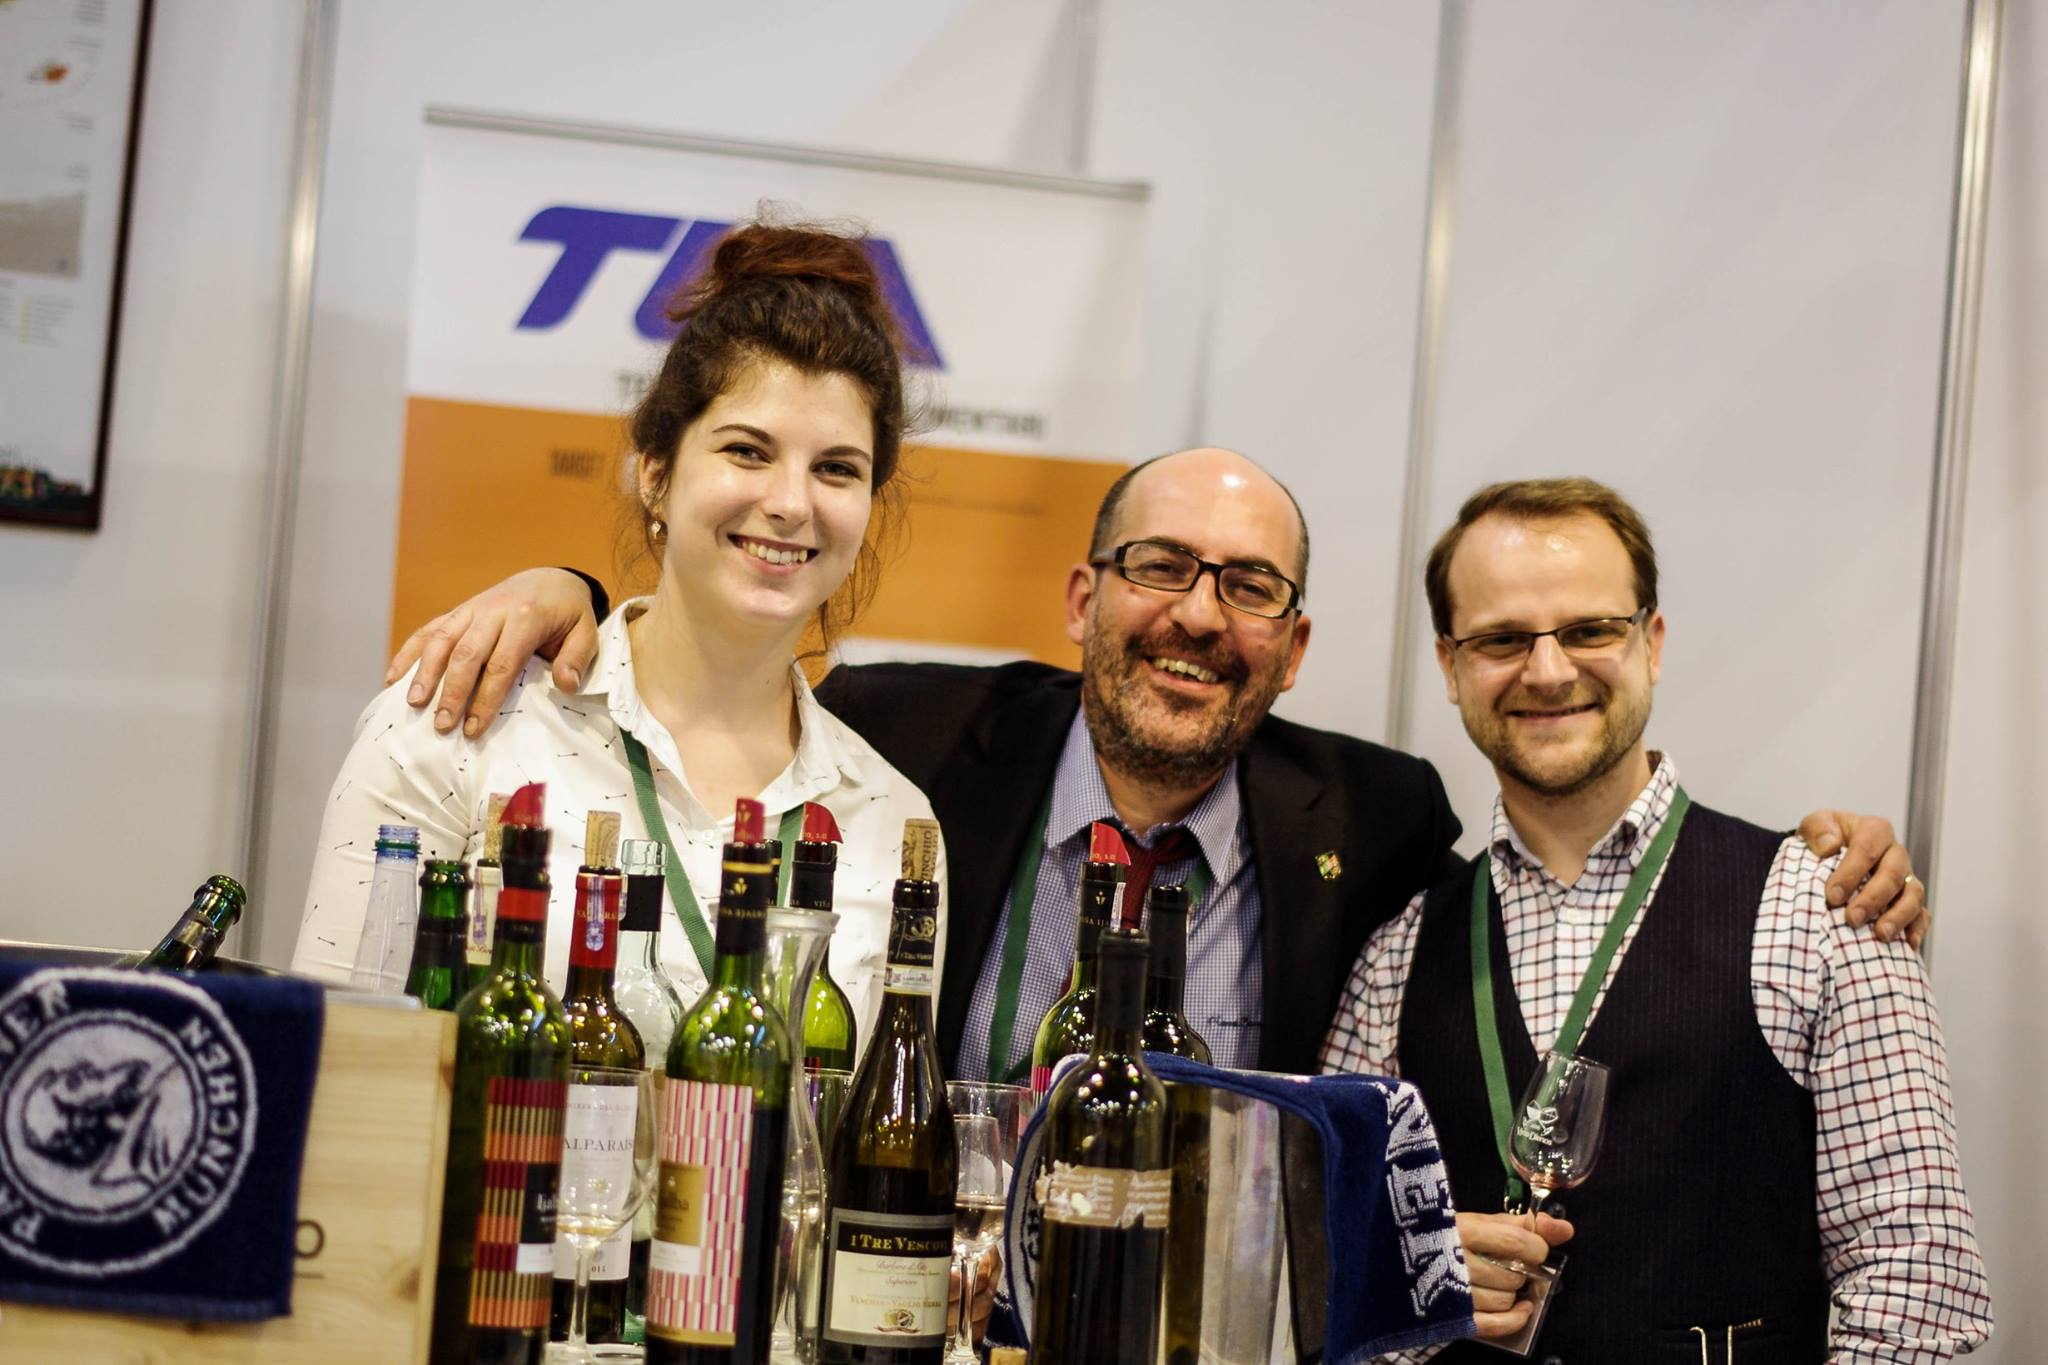 The Biggest Wine Exhibition in The Baltic States